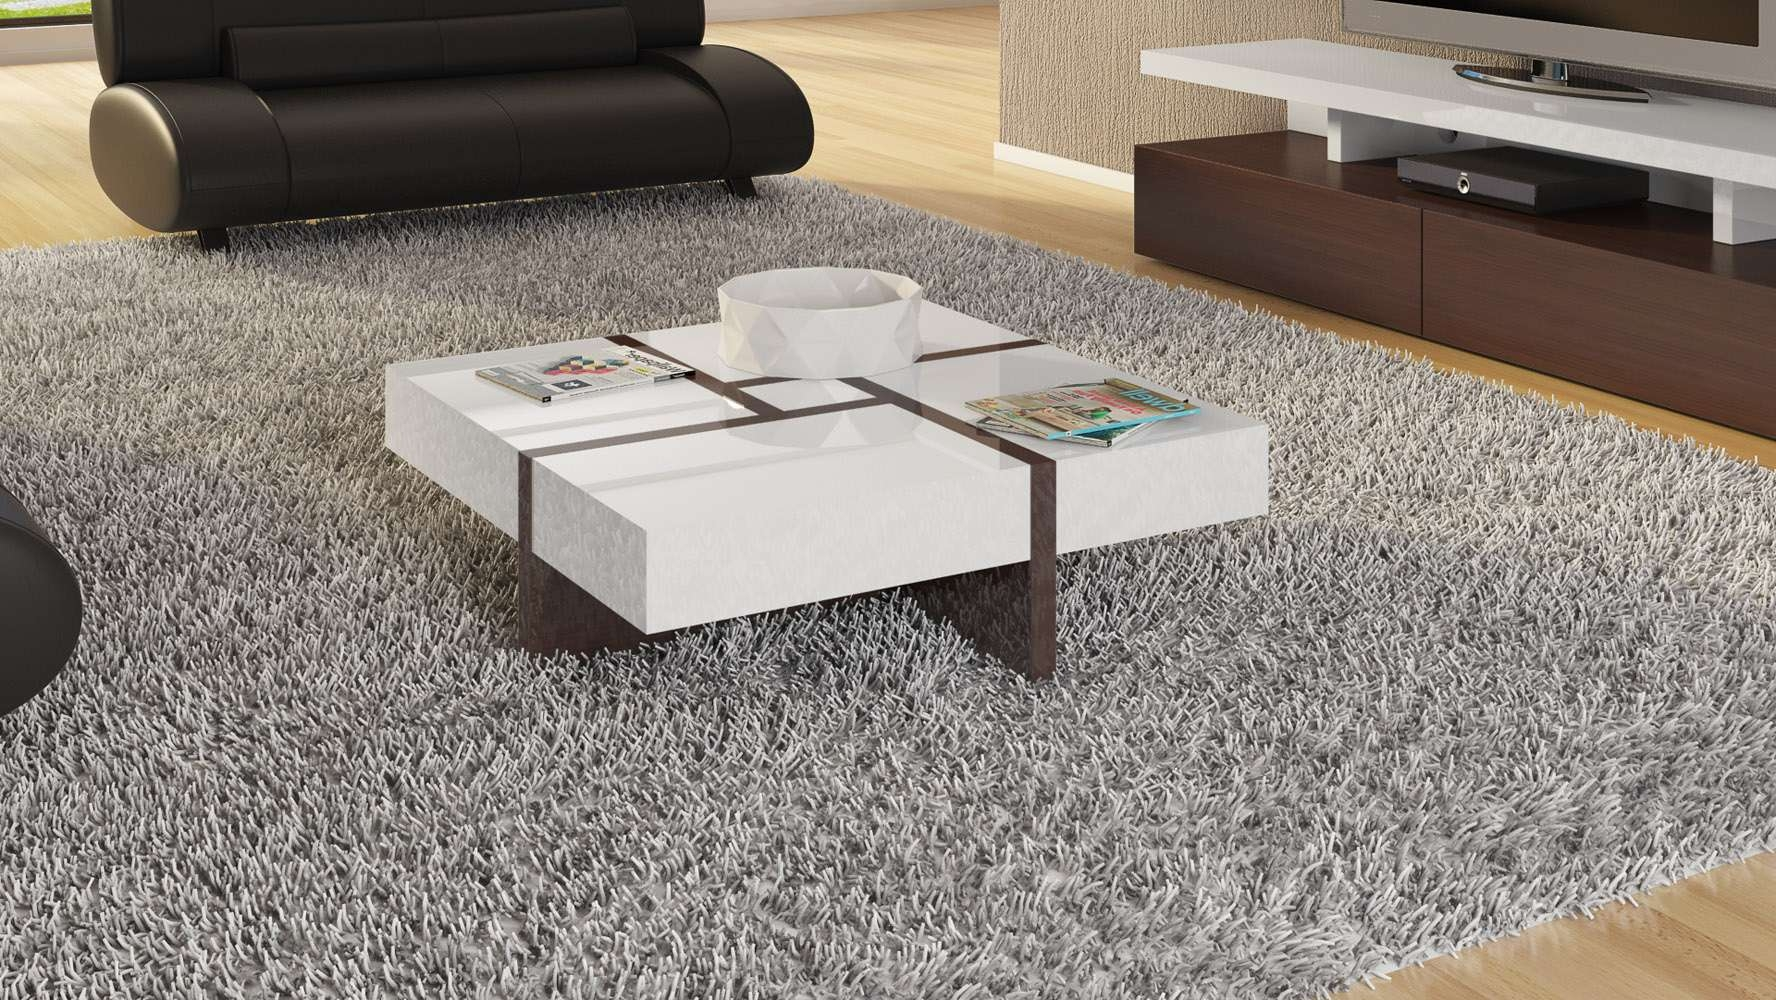 Most Current High Gloss Coffee Tables Pertaining To Mcintosh High Gloss Coffee Table With Storage – White Square (View 9 of 20)